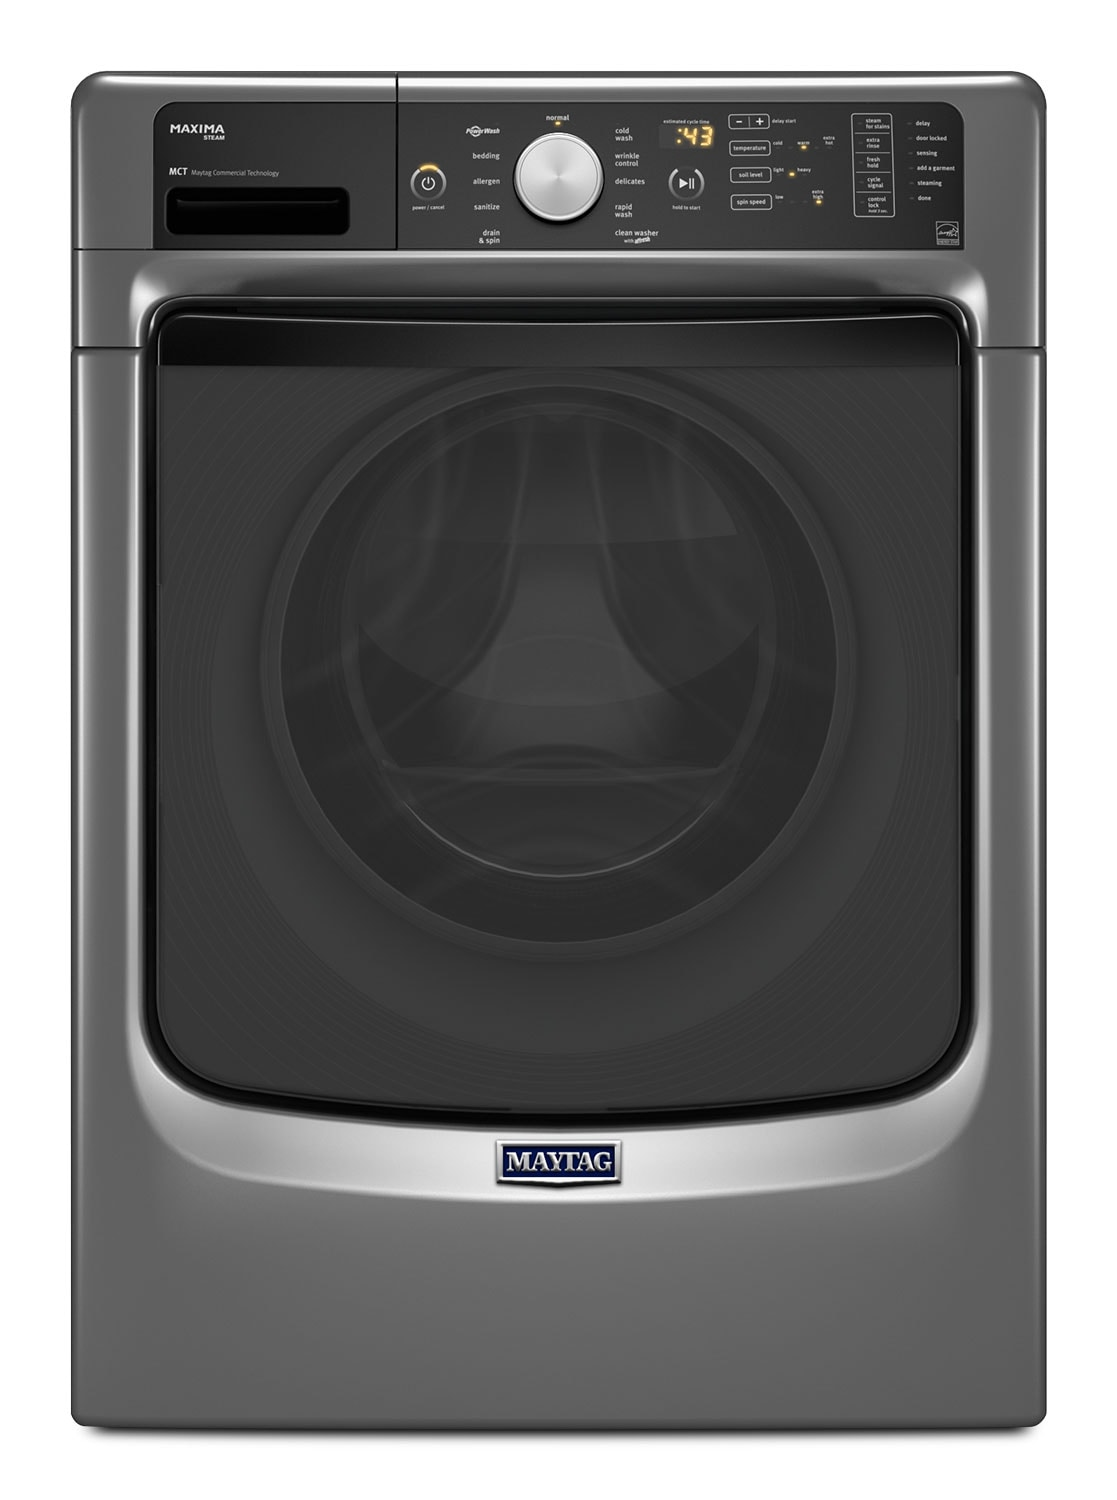 Maytag Metallic Slate Front-Load Washer (4.8 Cu. Ft. I.E.C.) - MHW5400DC